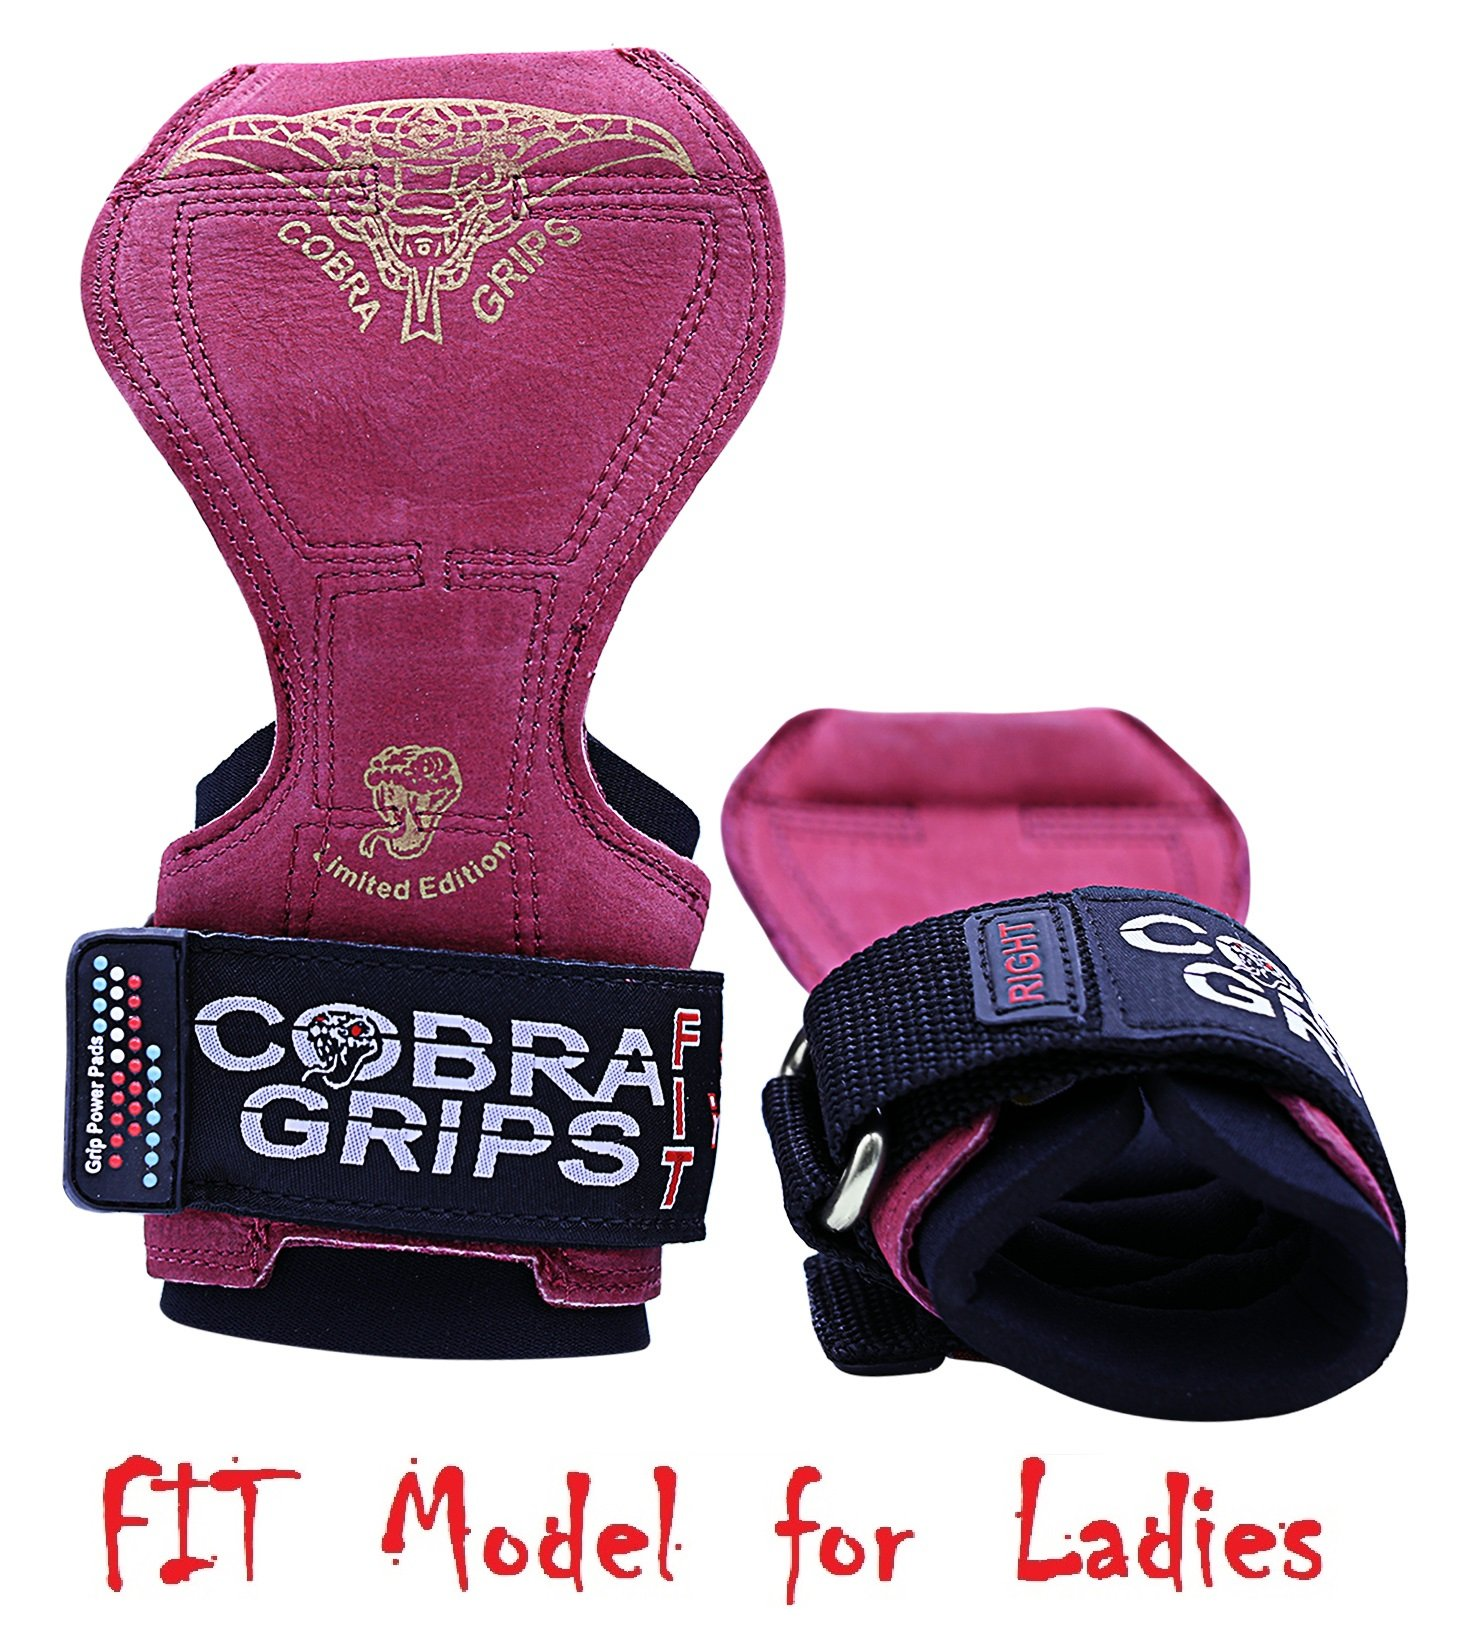 Cobra Grips PRO Weight Lifting Gloves Heavy Duty Straps Alternative to Power Lifting Hooks for Deadlifts with Built in Adjustable Neoprene Padded Wrist Wrap Support Bodybuilding (FIT Red Leather)